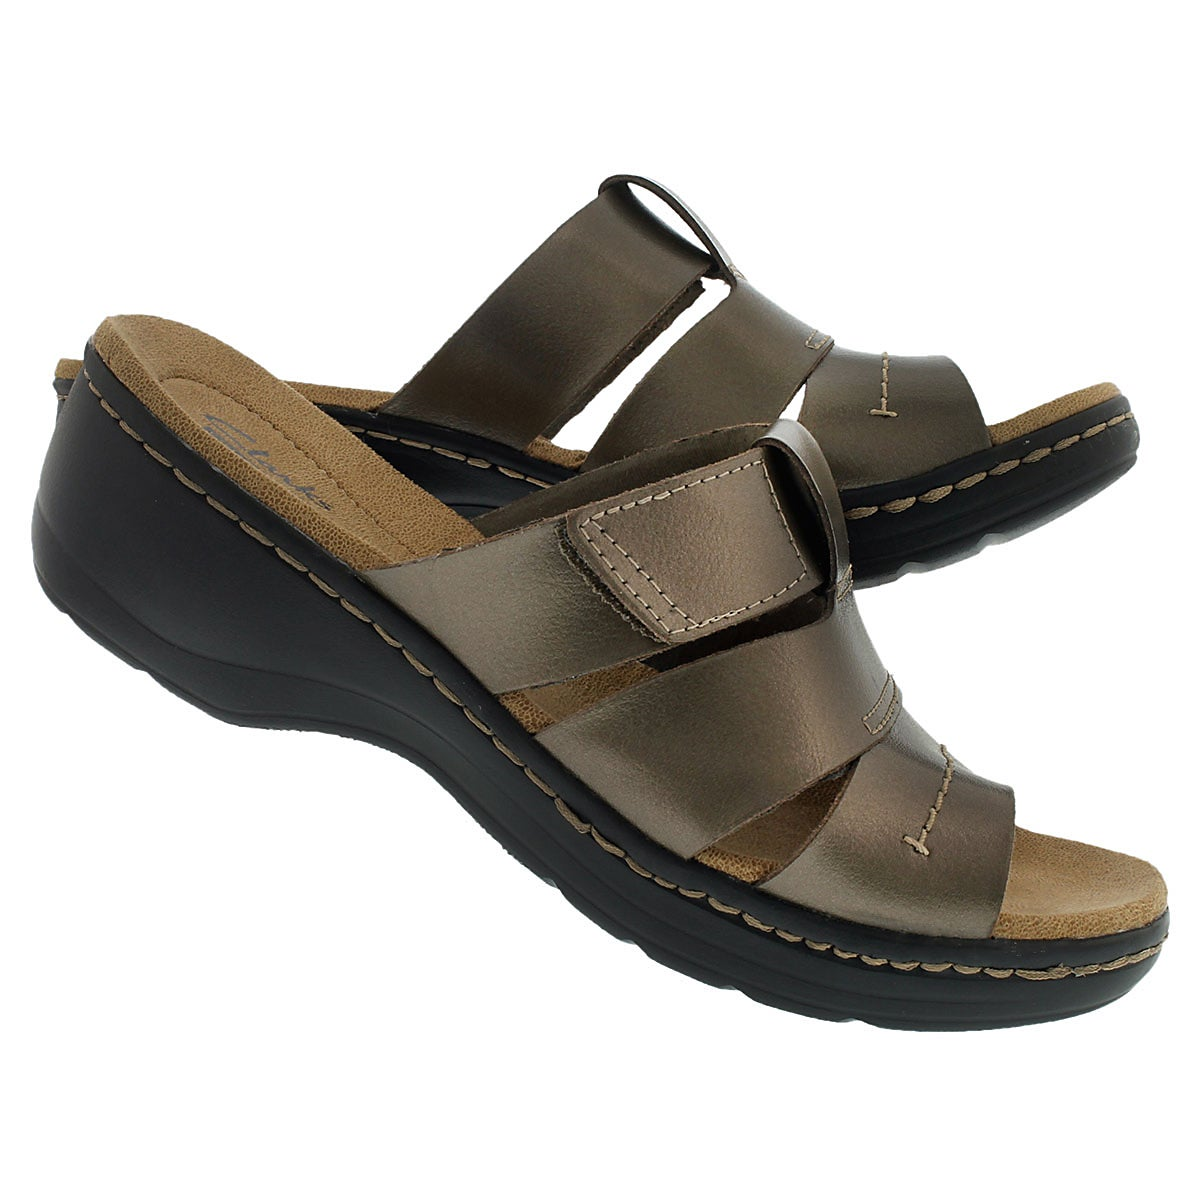 Lds Glacier pewter casual slide sandal